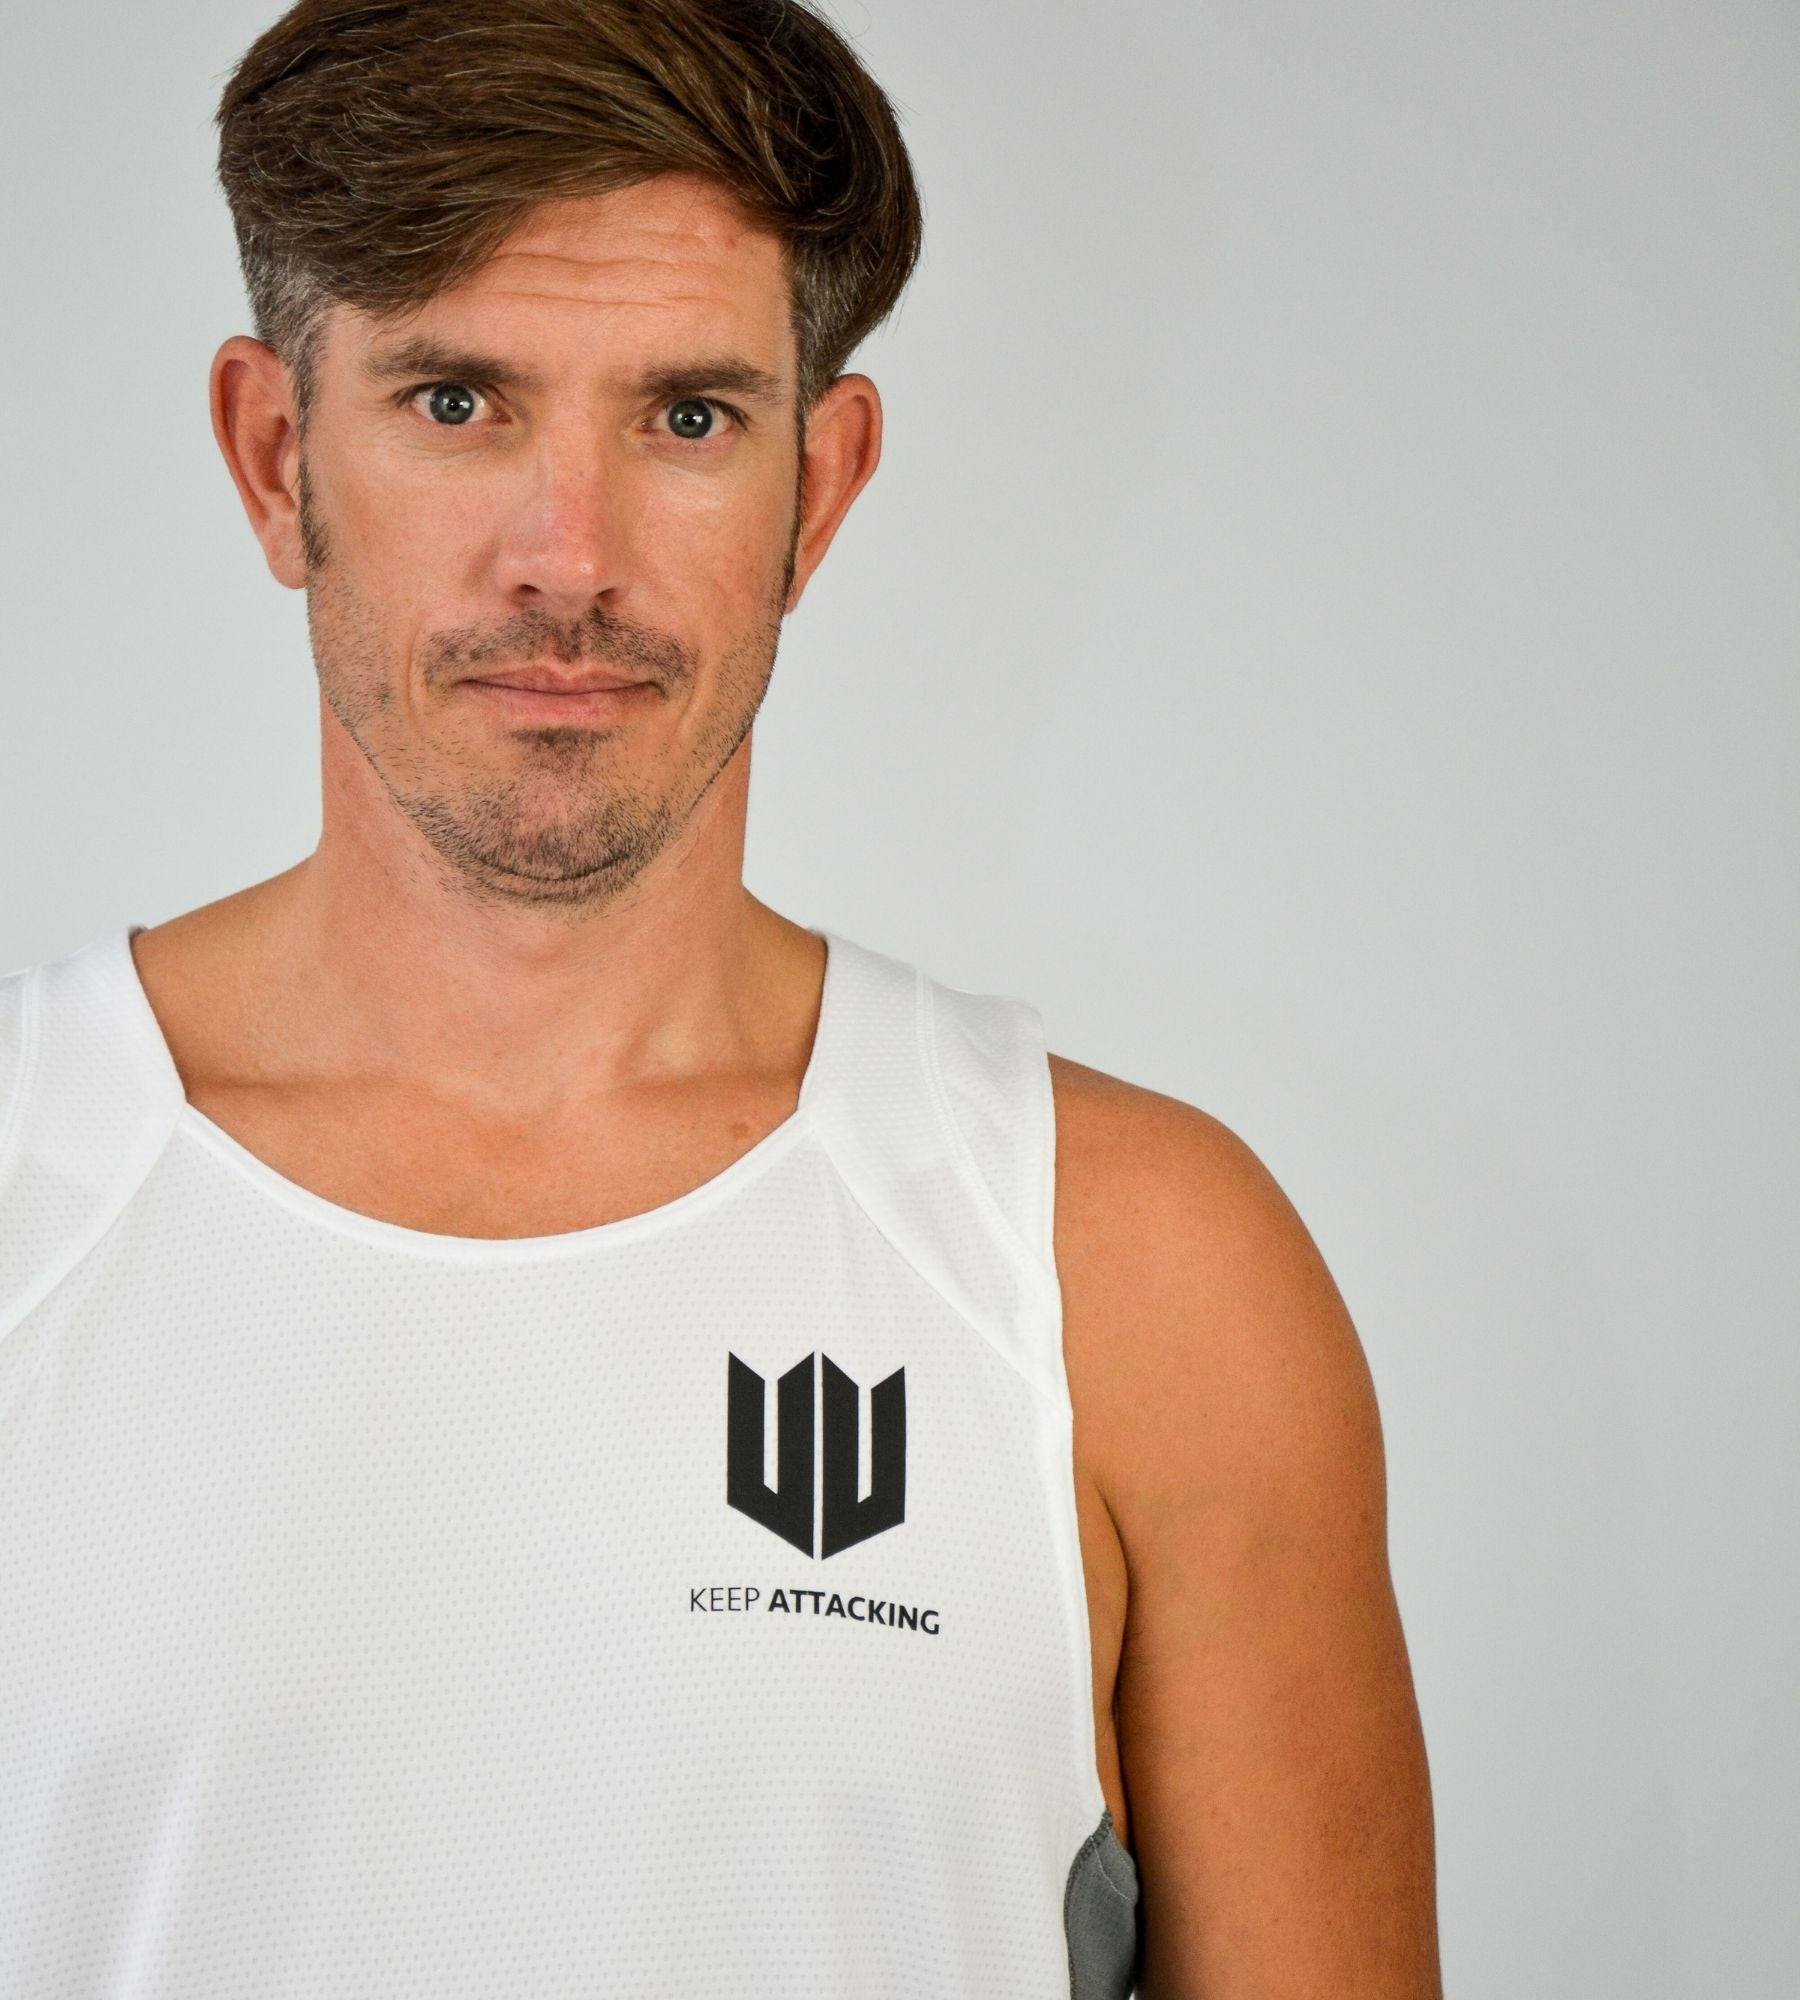 KA Mens Endurance Tank White Grey Closeup